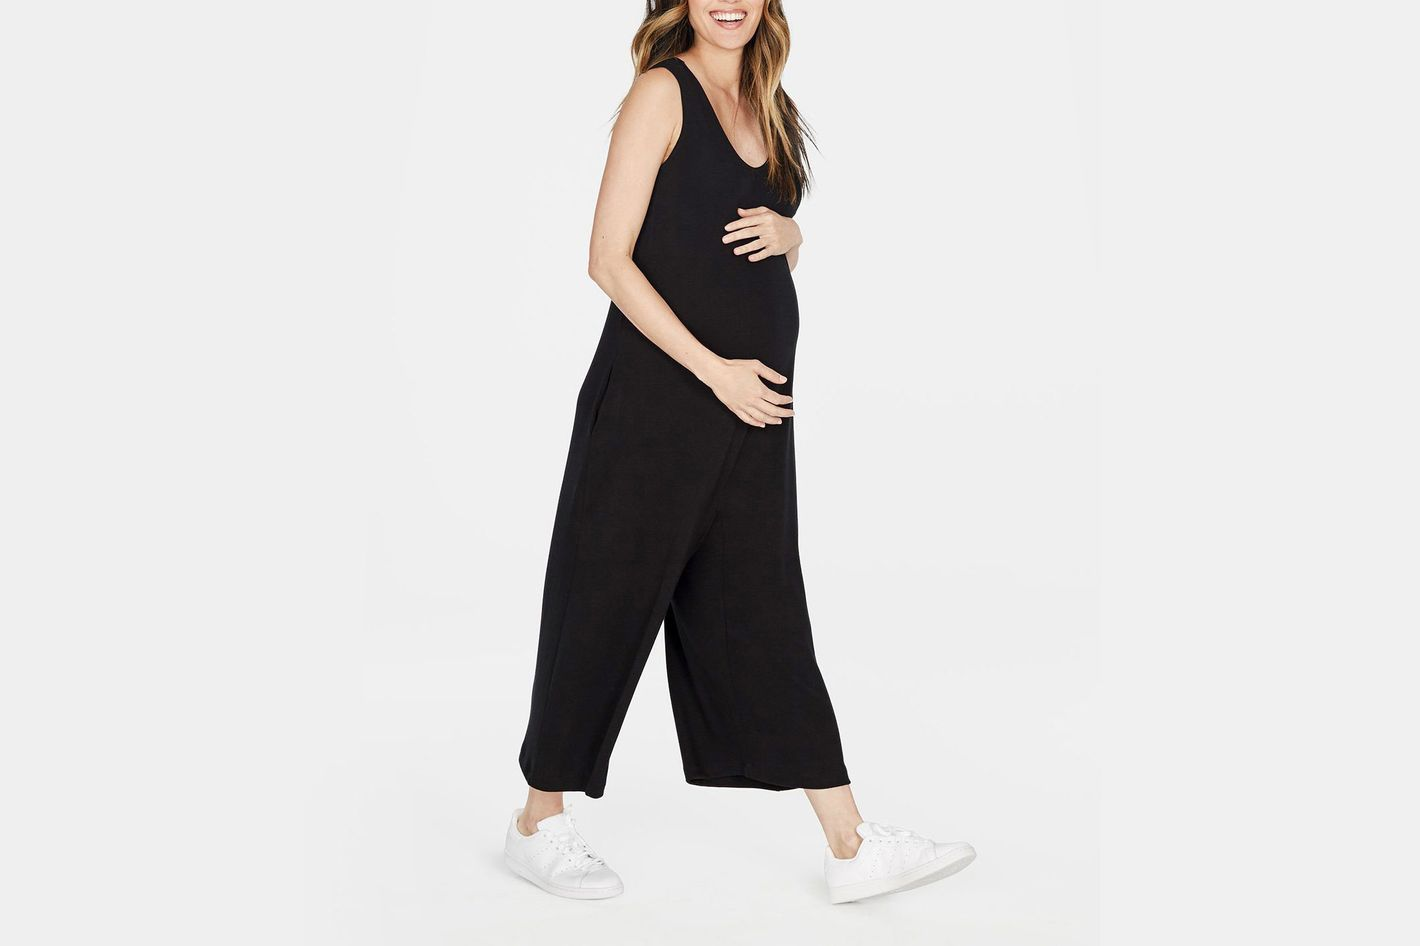 a91bc5d0399c 63 of the Best Maternity Clothes  Jeans